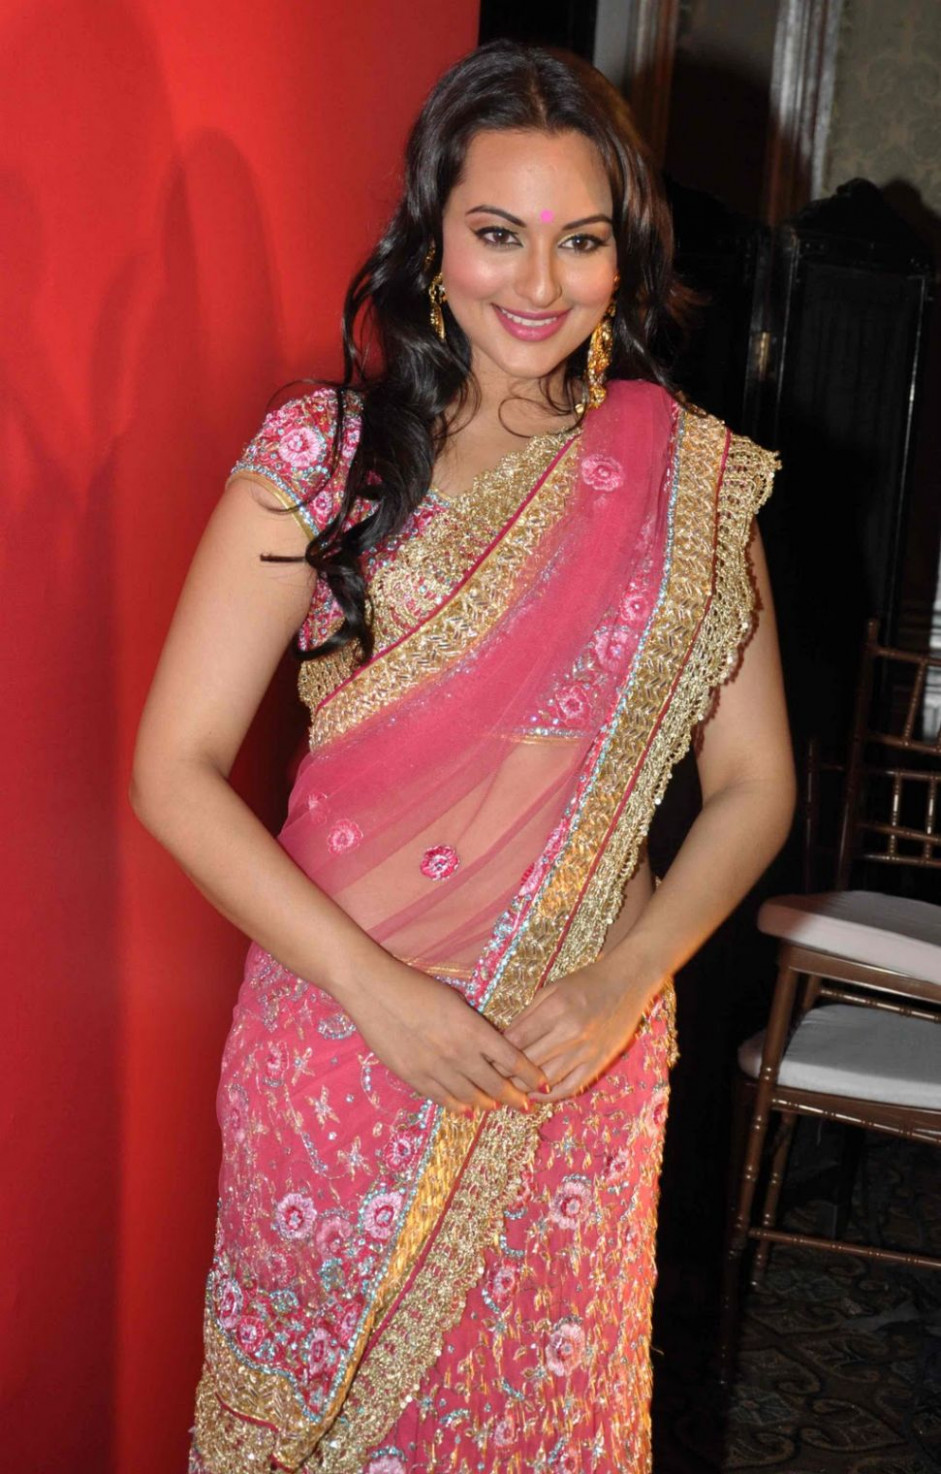 SHE FASHION CLUB: Bollywood Actress Ramp walk In saree